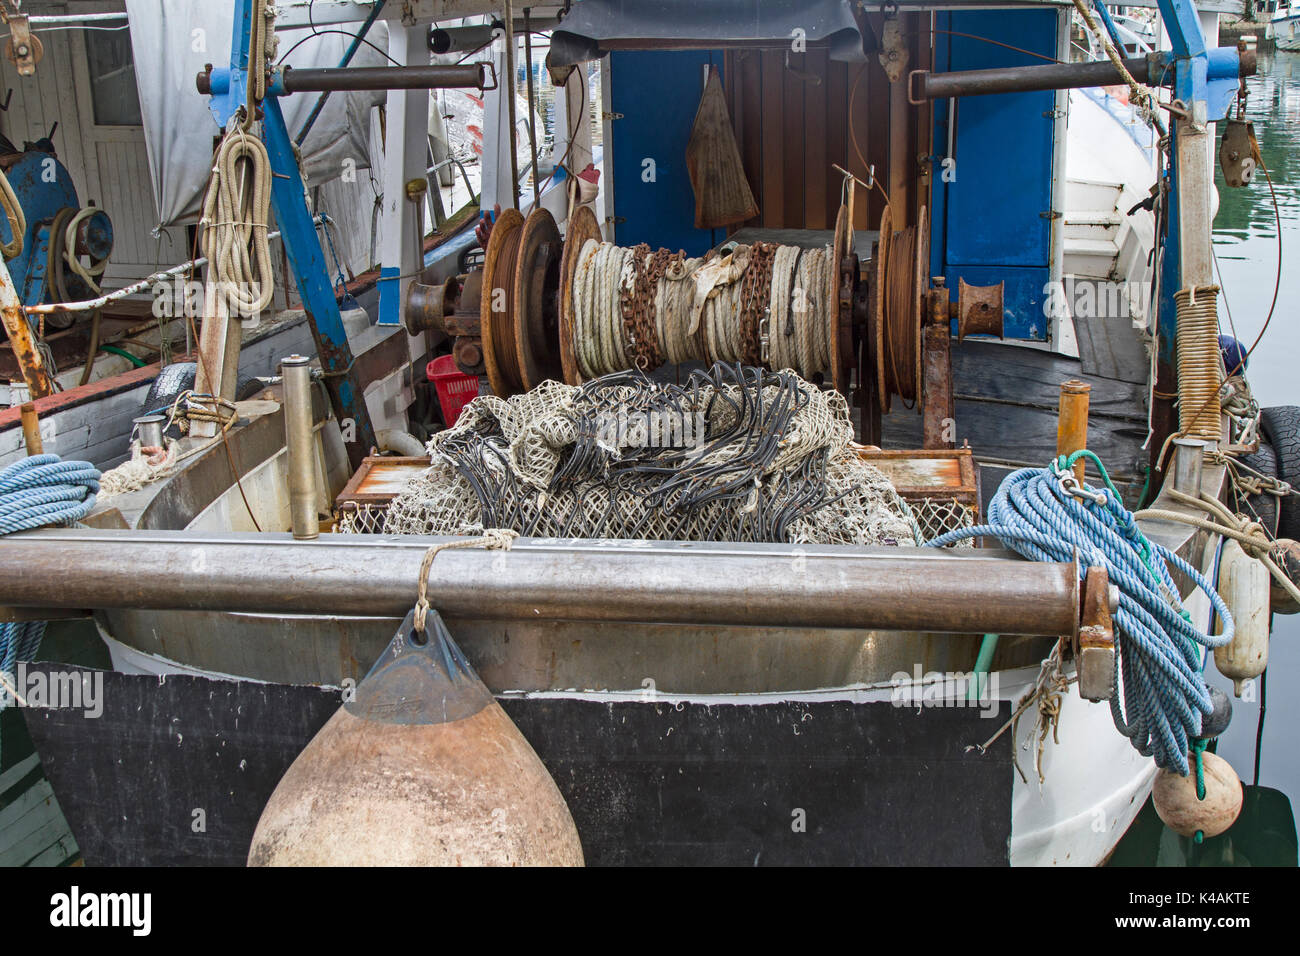 Ausgangssprache Englisch Detailed View Of A Fishing Boat In The Harbor Of The Istrian Village Of Novigrad - Stock Image